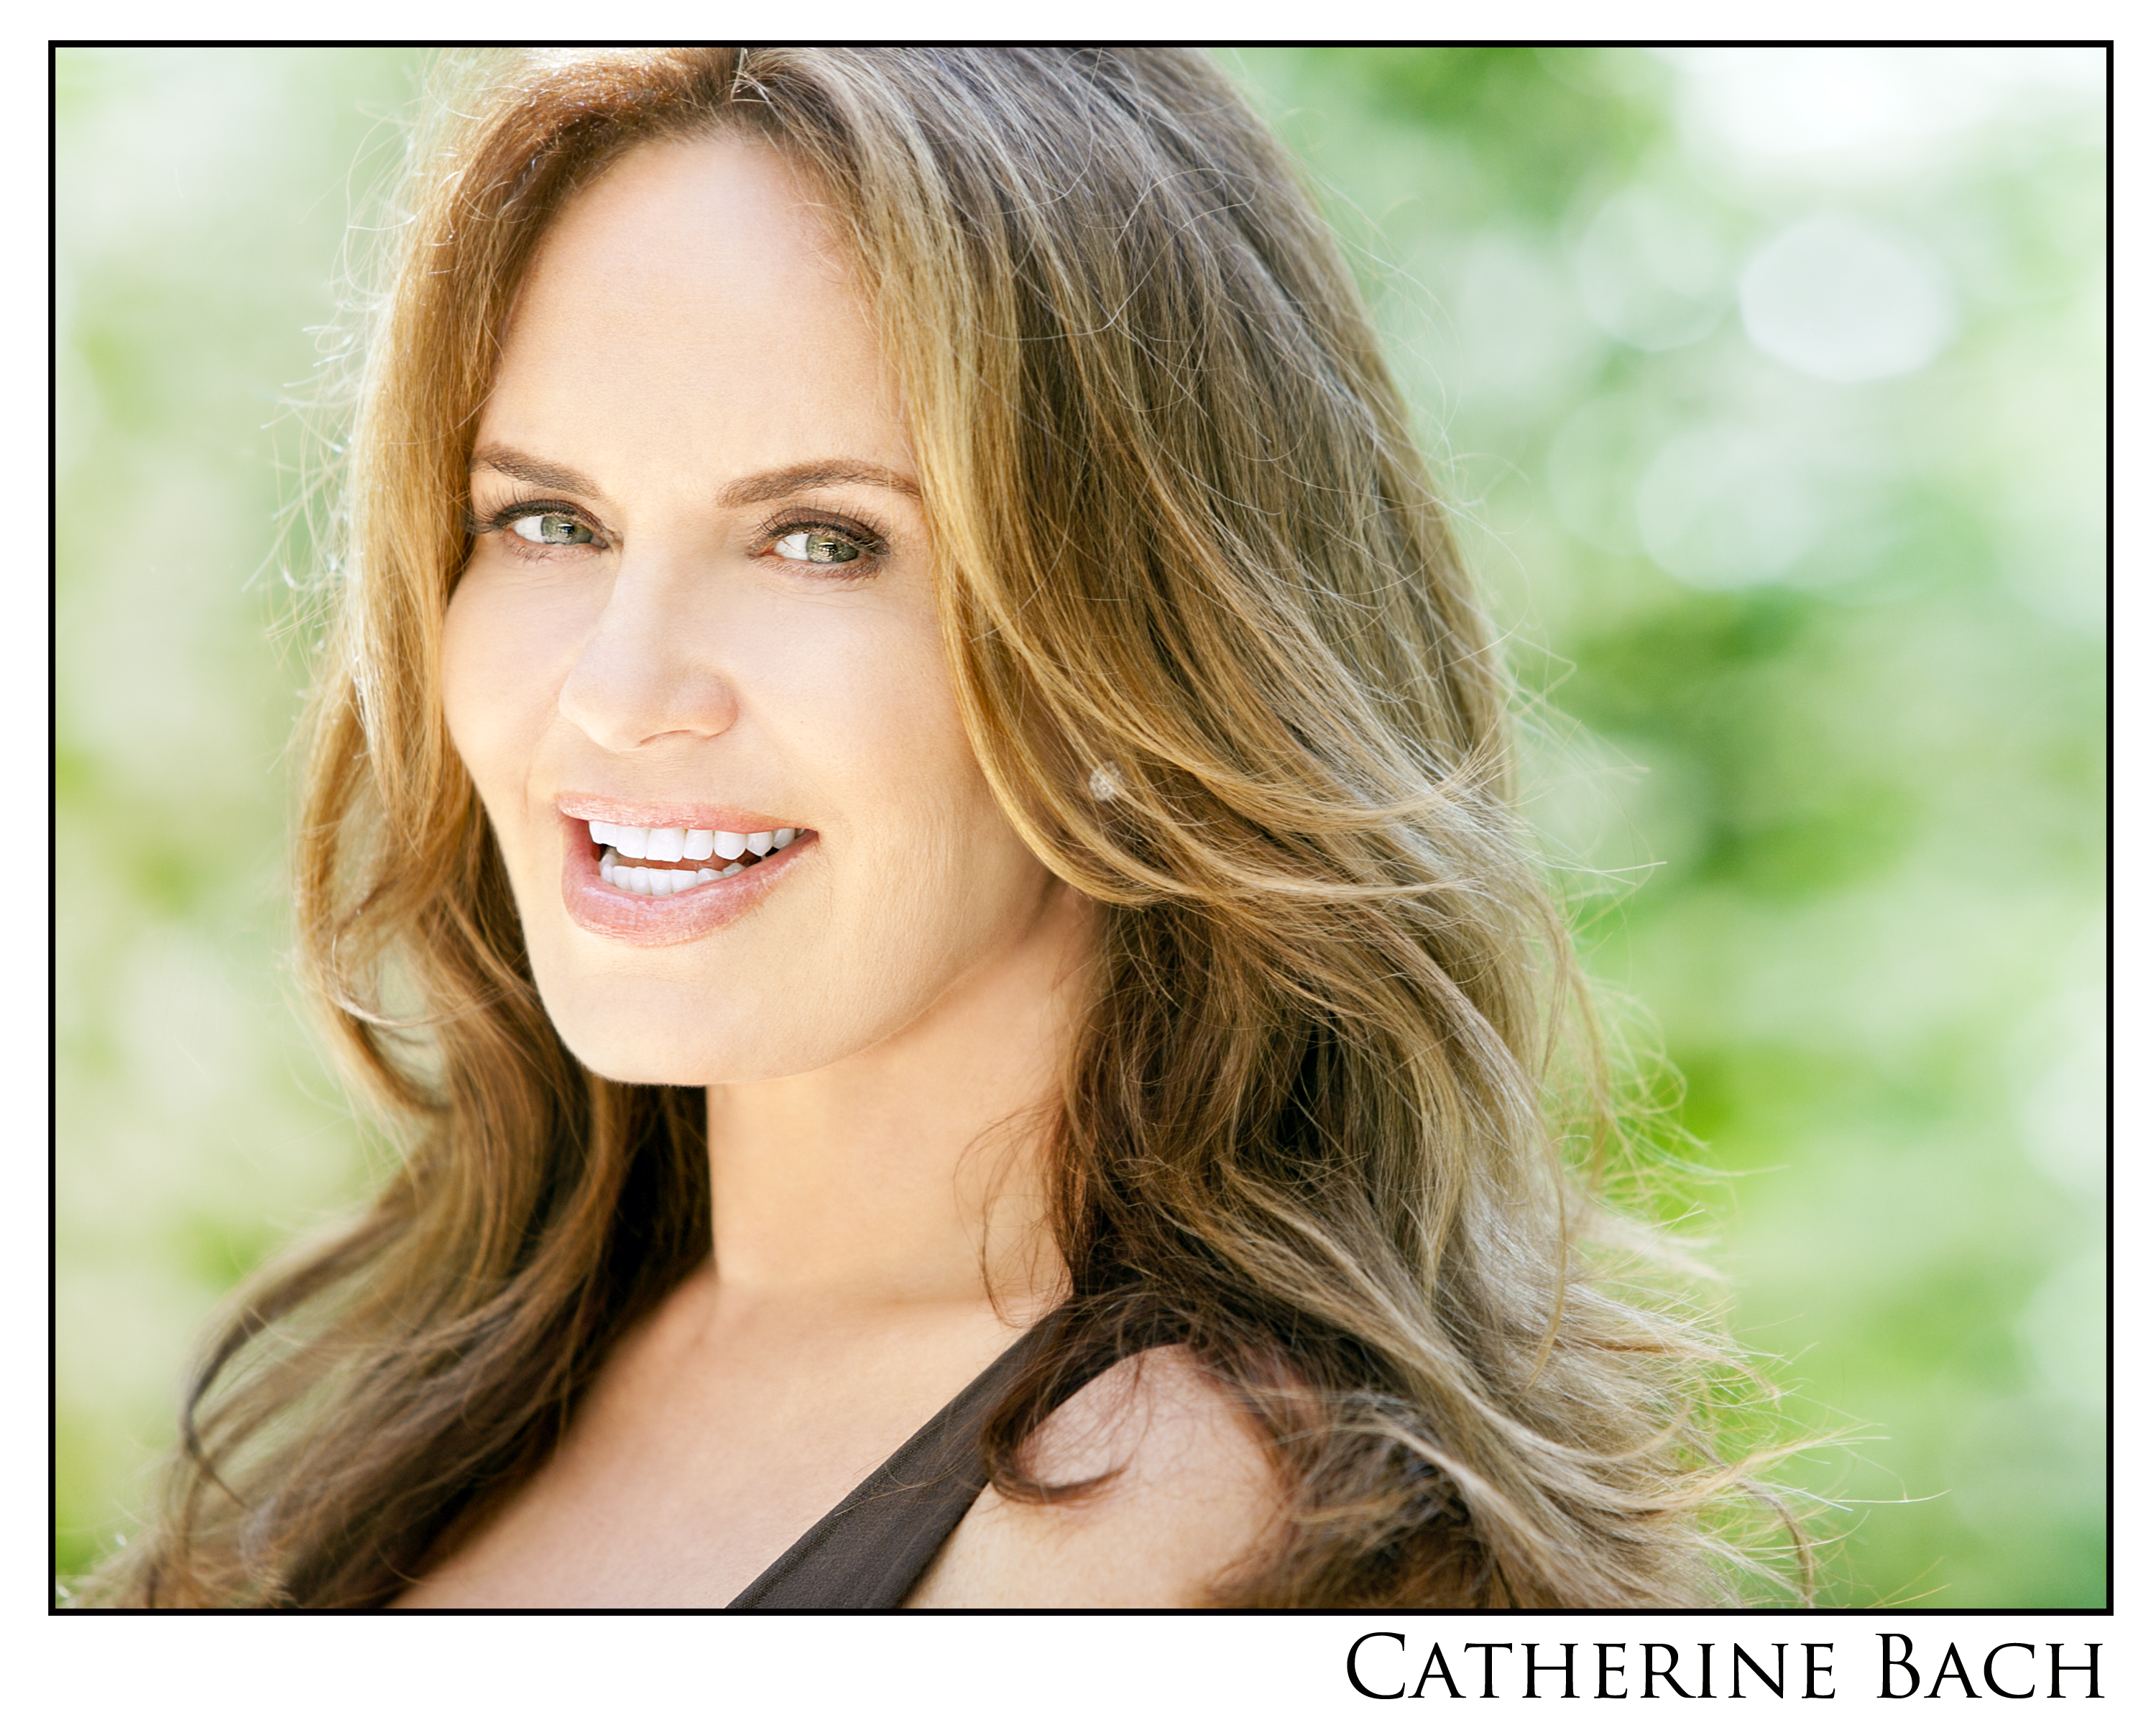 Catherine Bach images 82